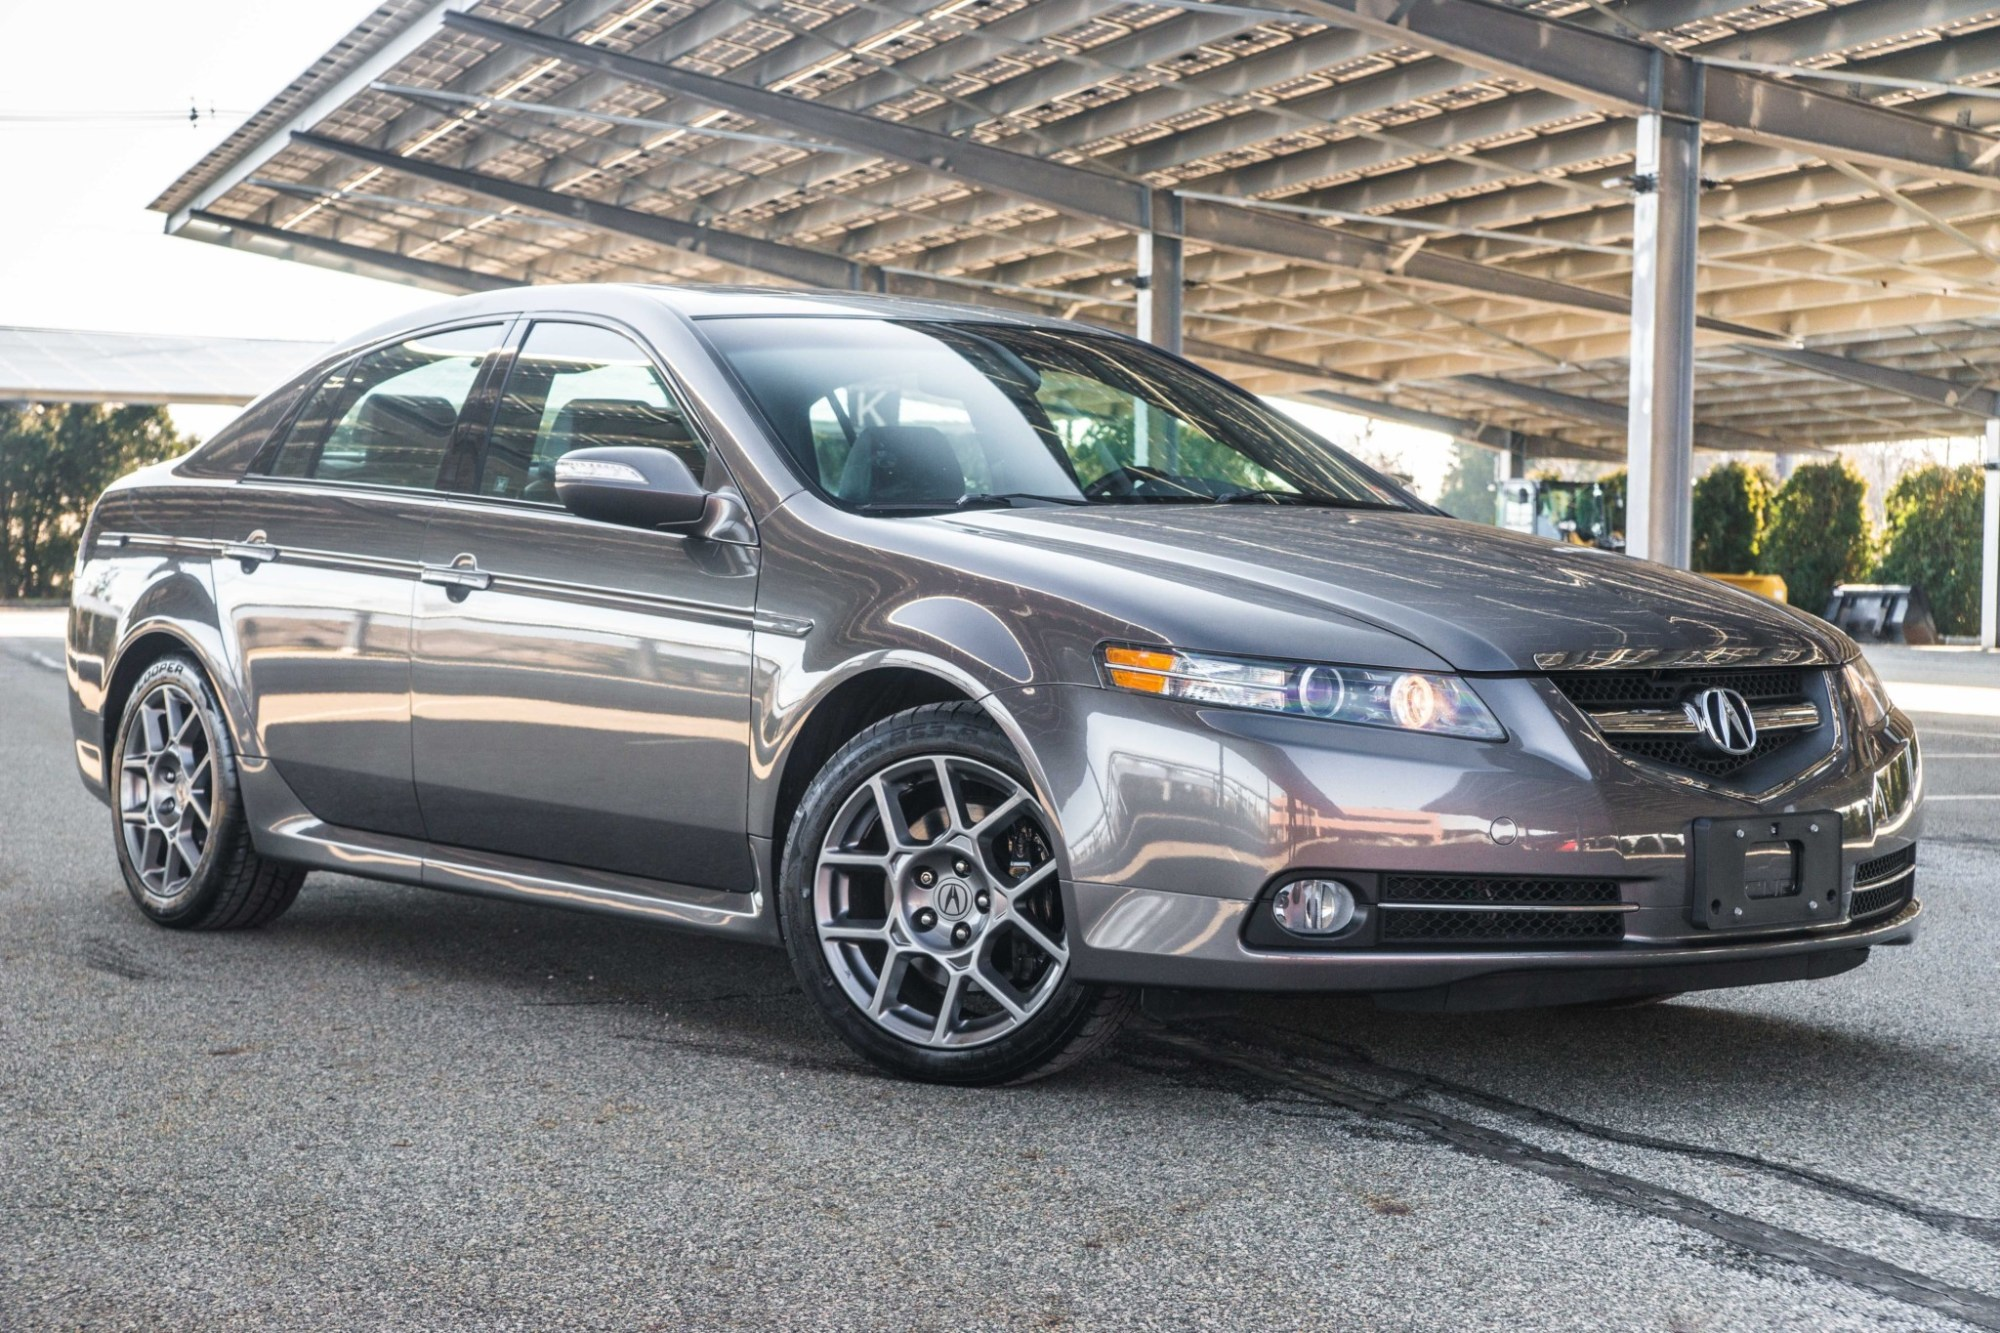 hight resolution of no reserve 2008 acura tl type s 6 speed for sale on bat auctions sold for 15 750 on february 28 2019 lot 16 701 bring a trailer